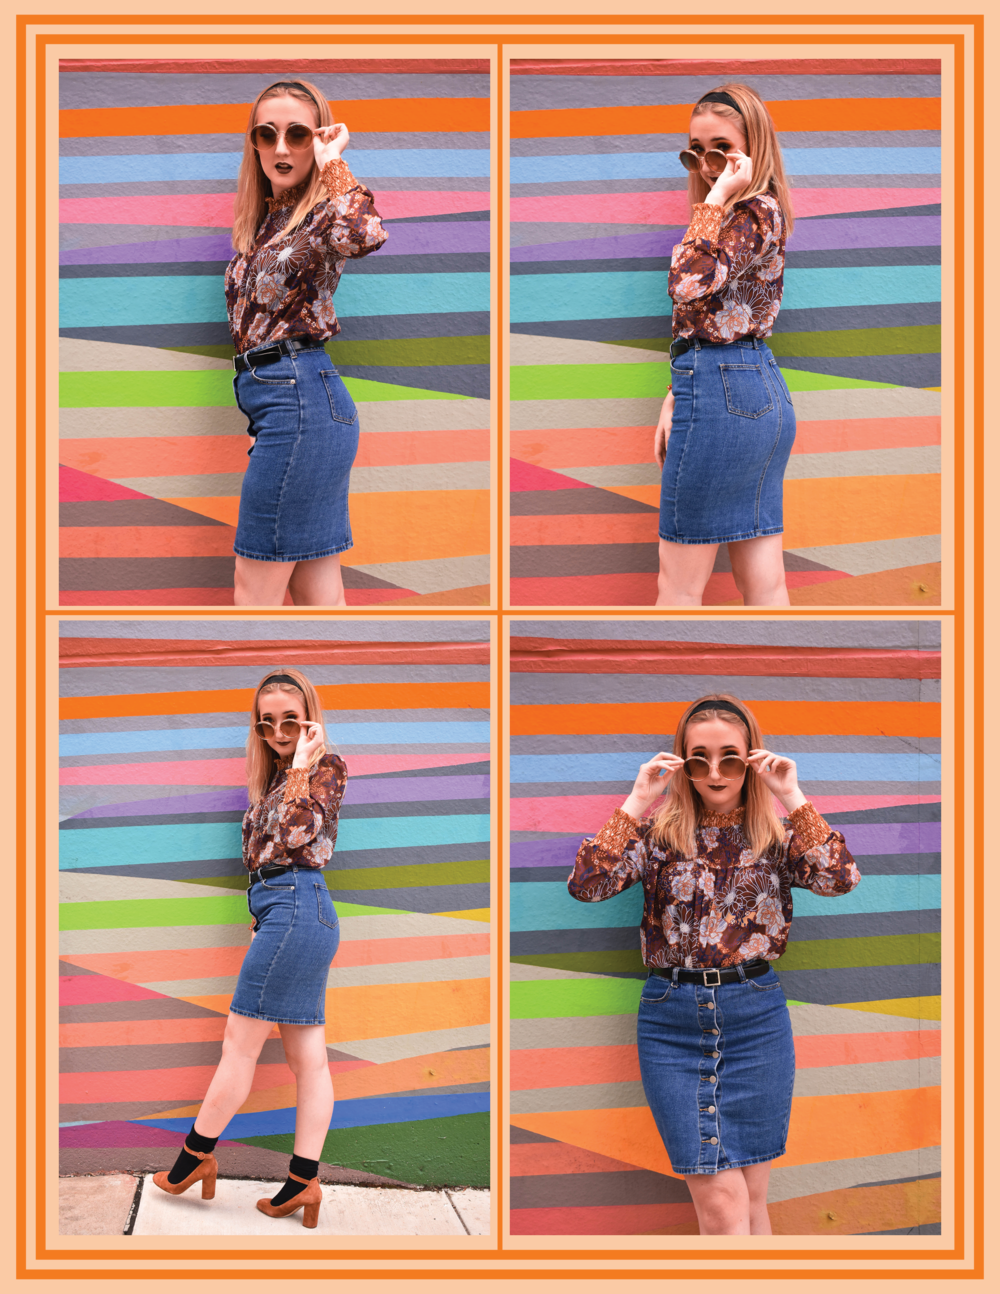 70s Orange Shoot3.png